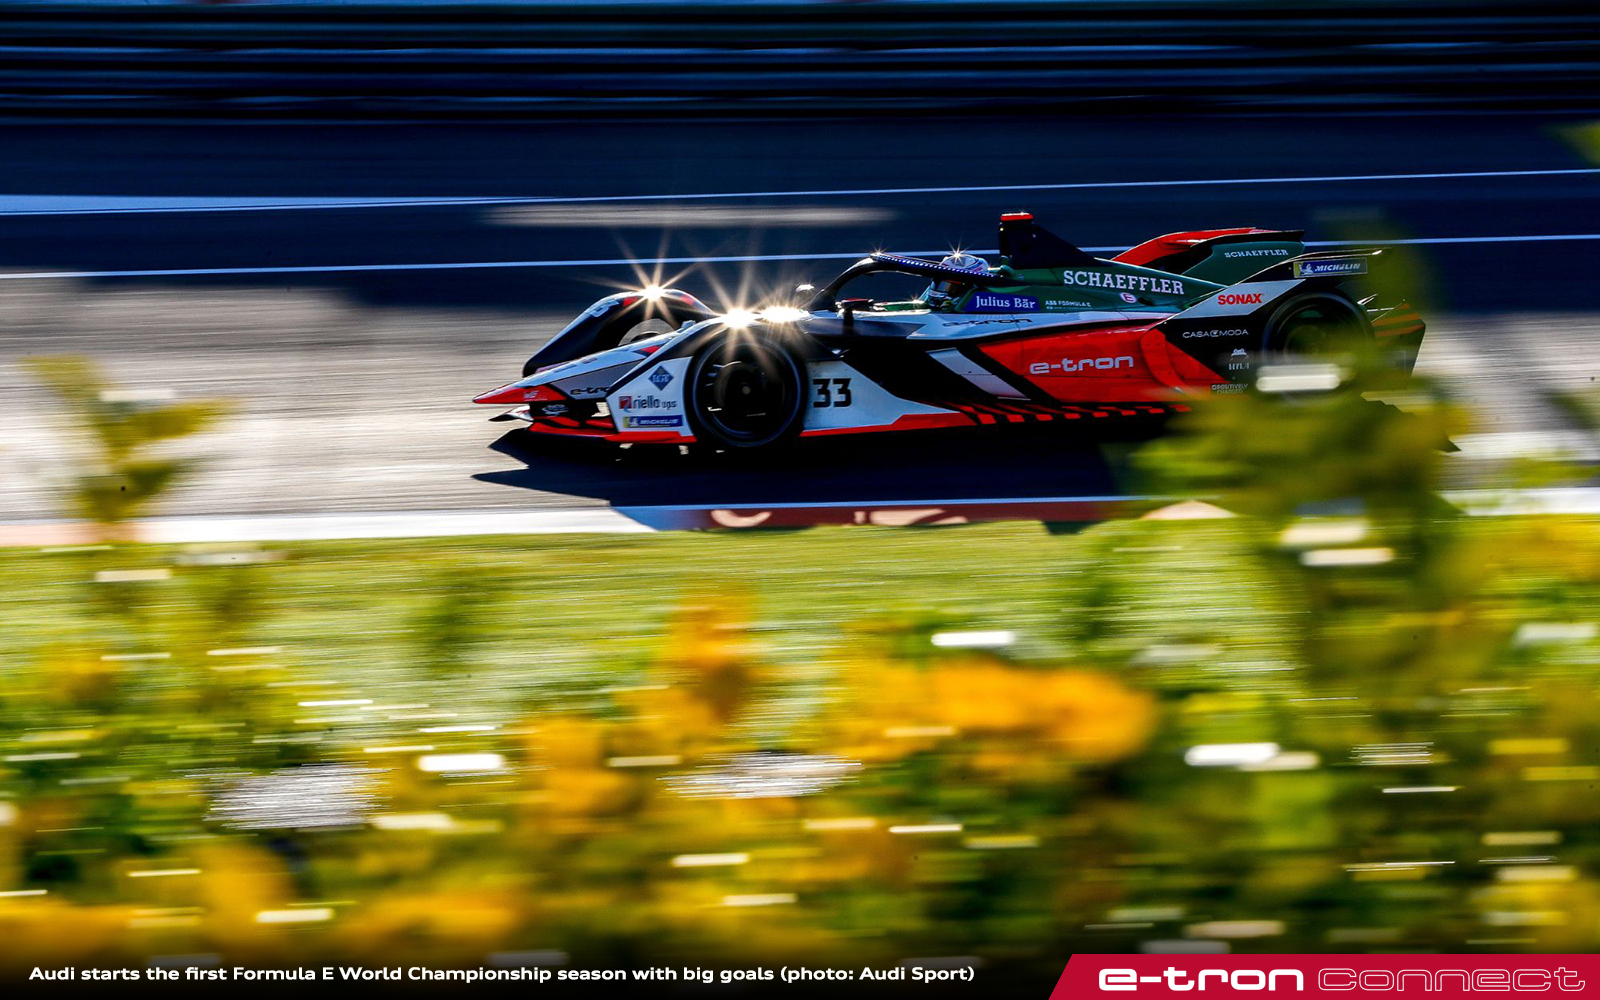 Audi Starts The First Formula E World Championship Season With Big Goals